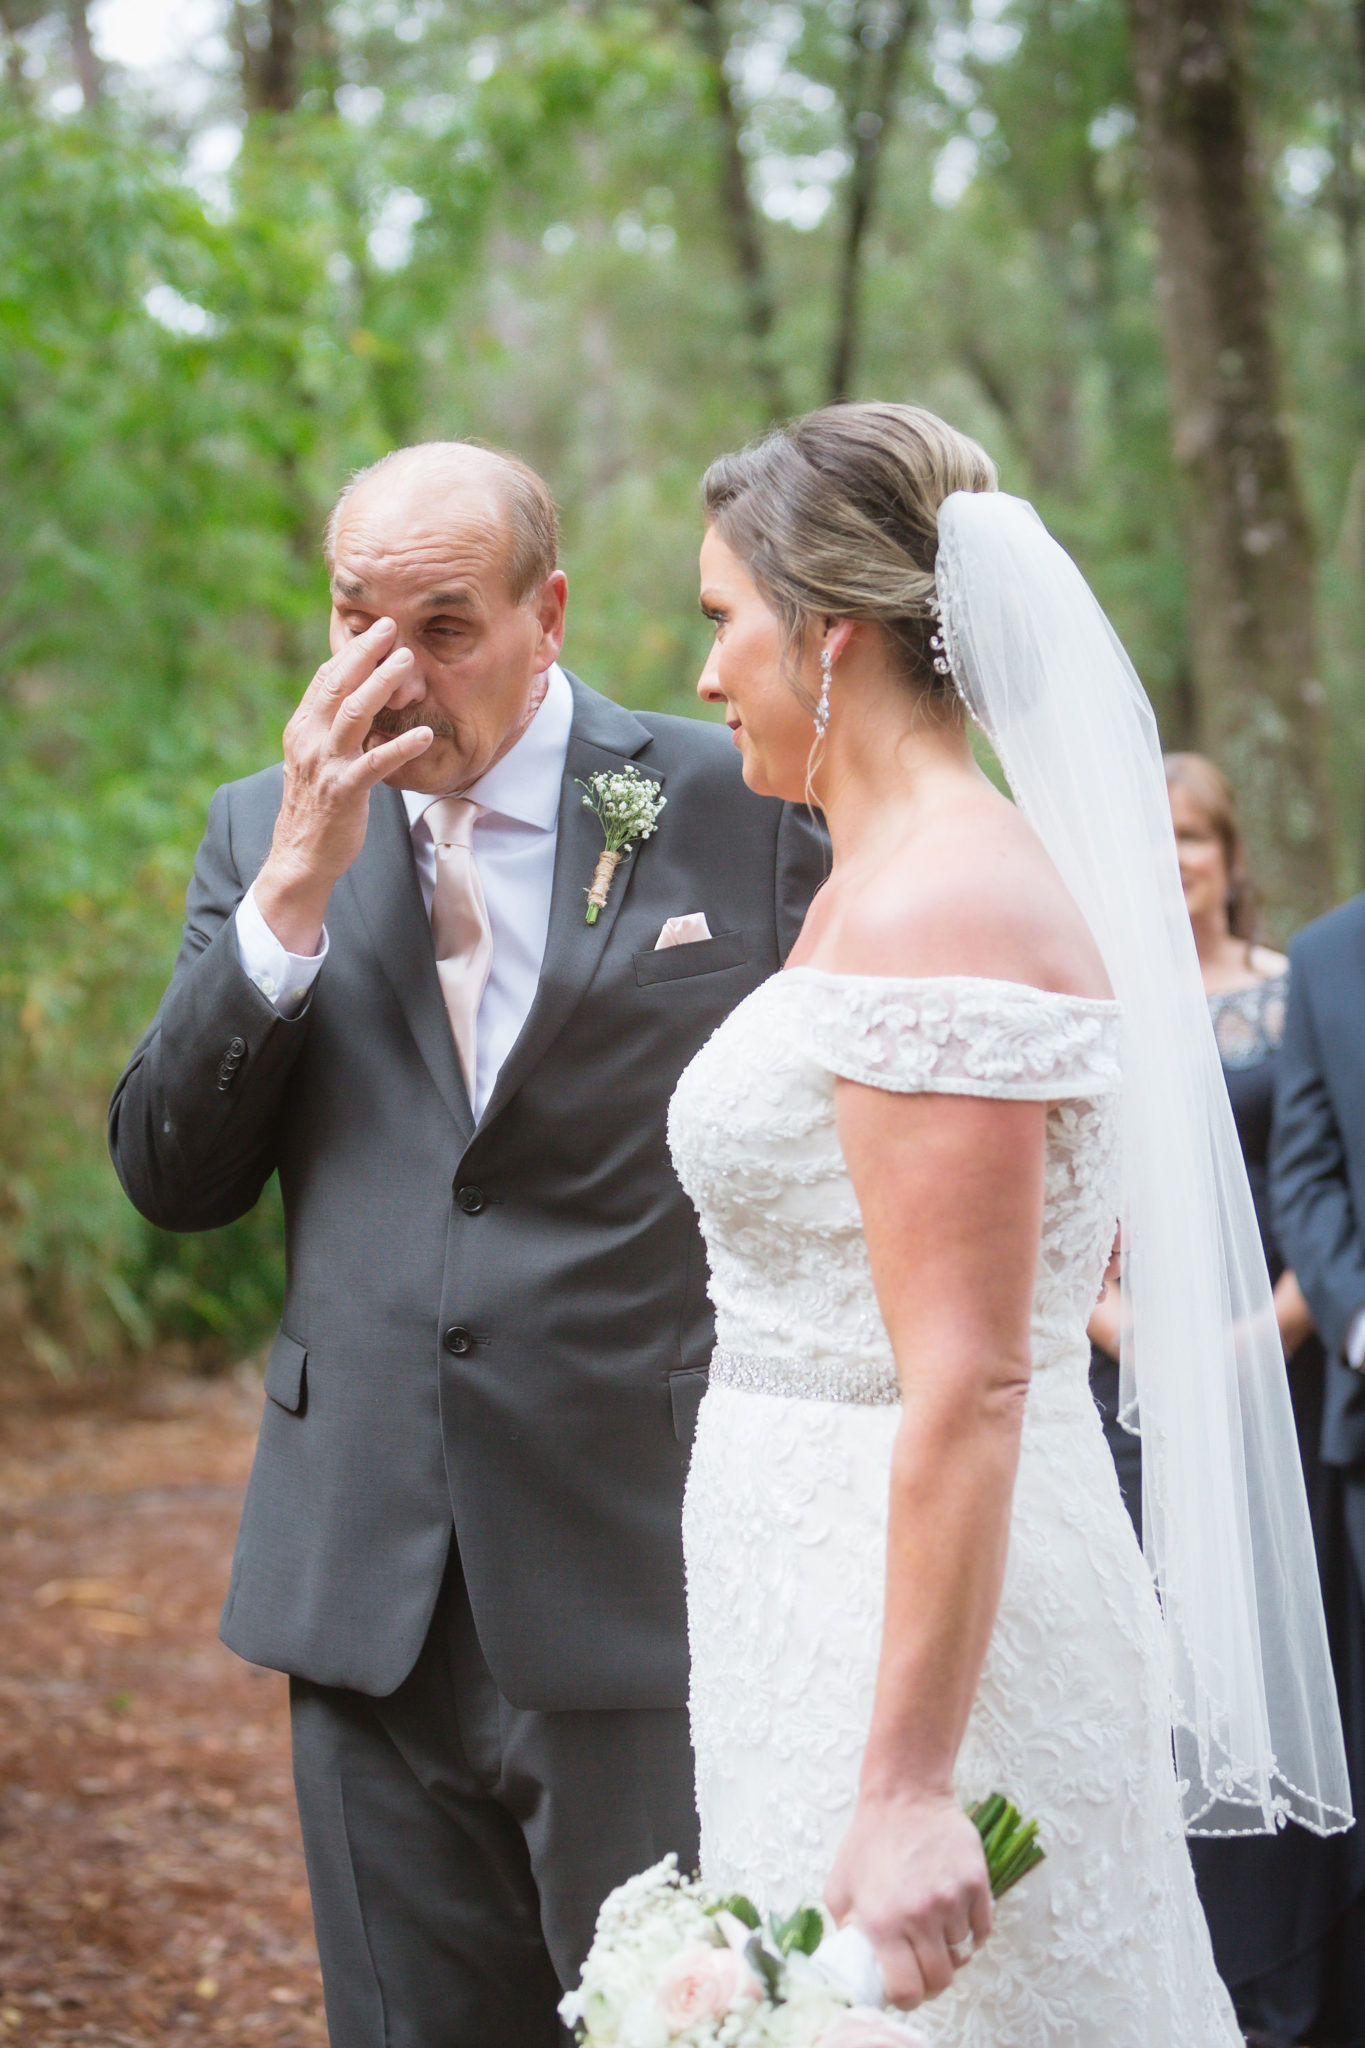 Father of the bride in an emotional moment.